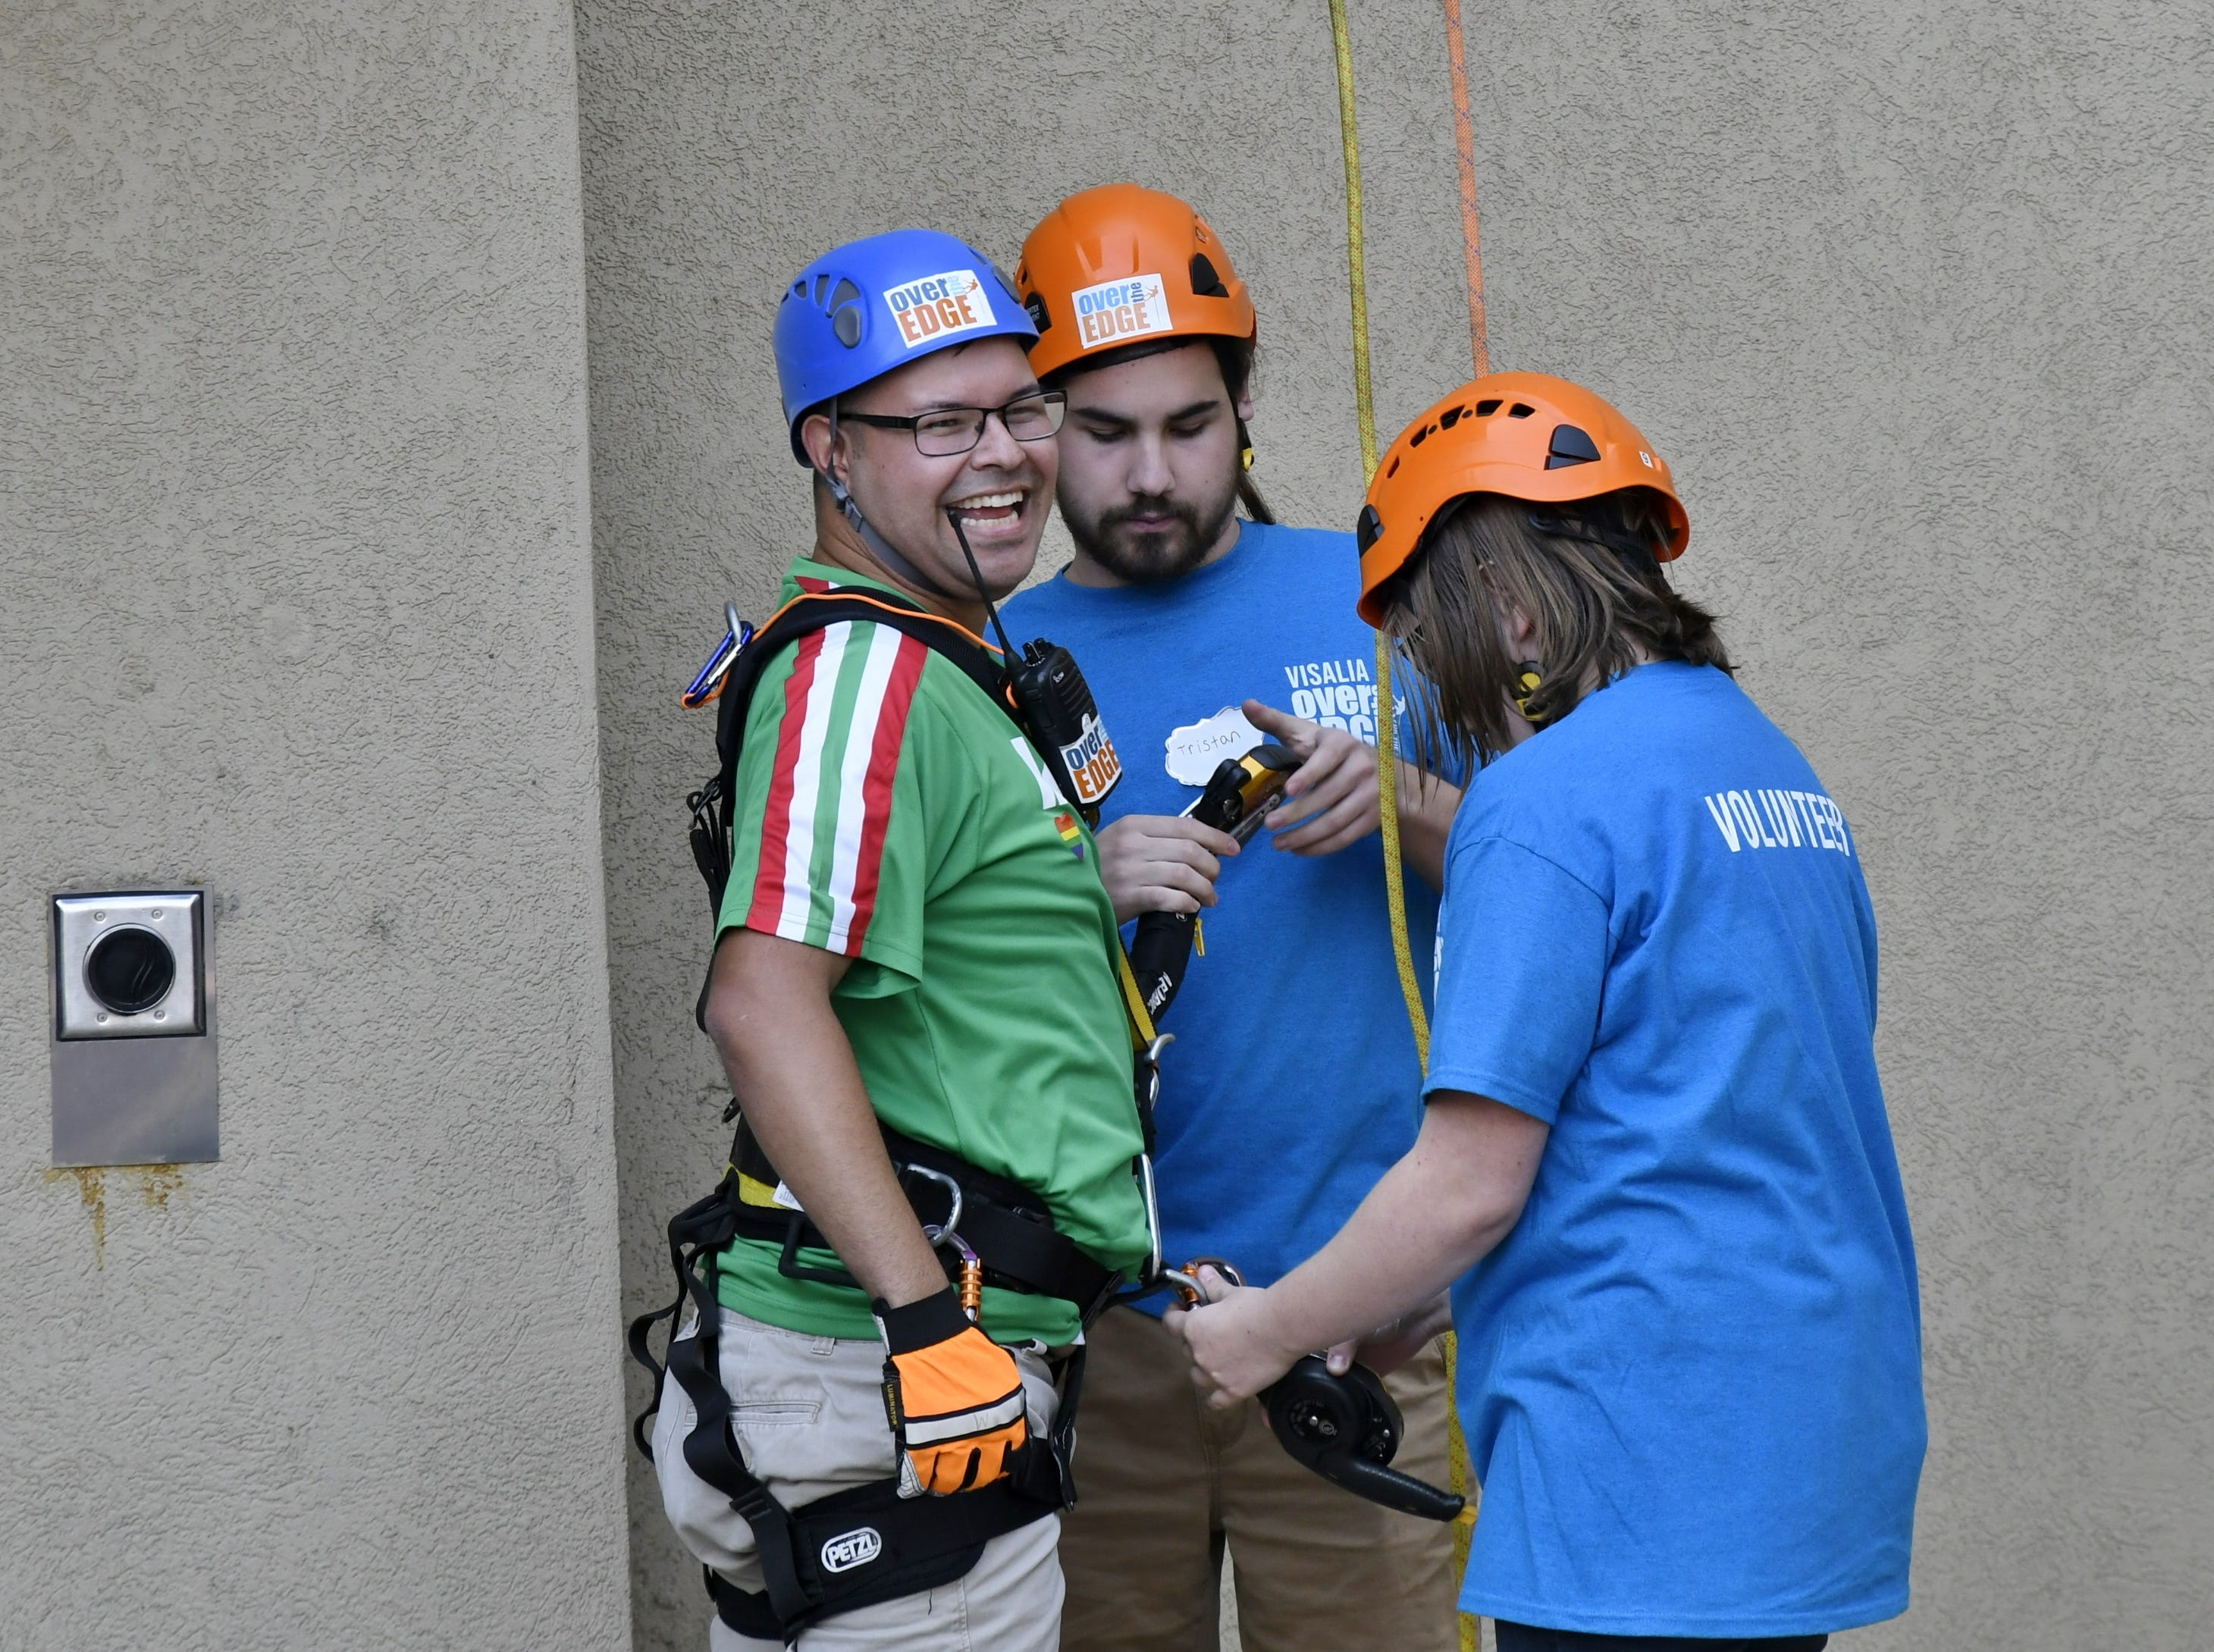 Carlos Mendoza smiles after rappelling down the side of the Visalia Marriott at the Convention Center in downtown Visalia for the first Over the Edge fundraising event for The Source LGBT+ Center on Saturday, November 10, 2018.